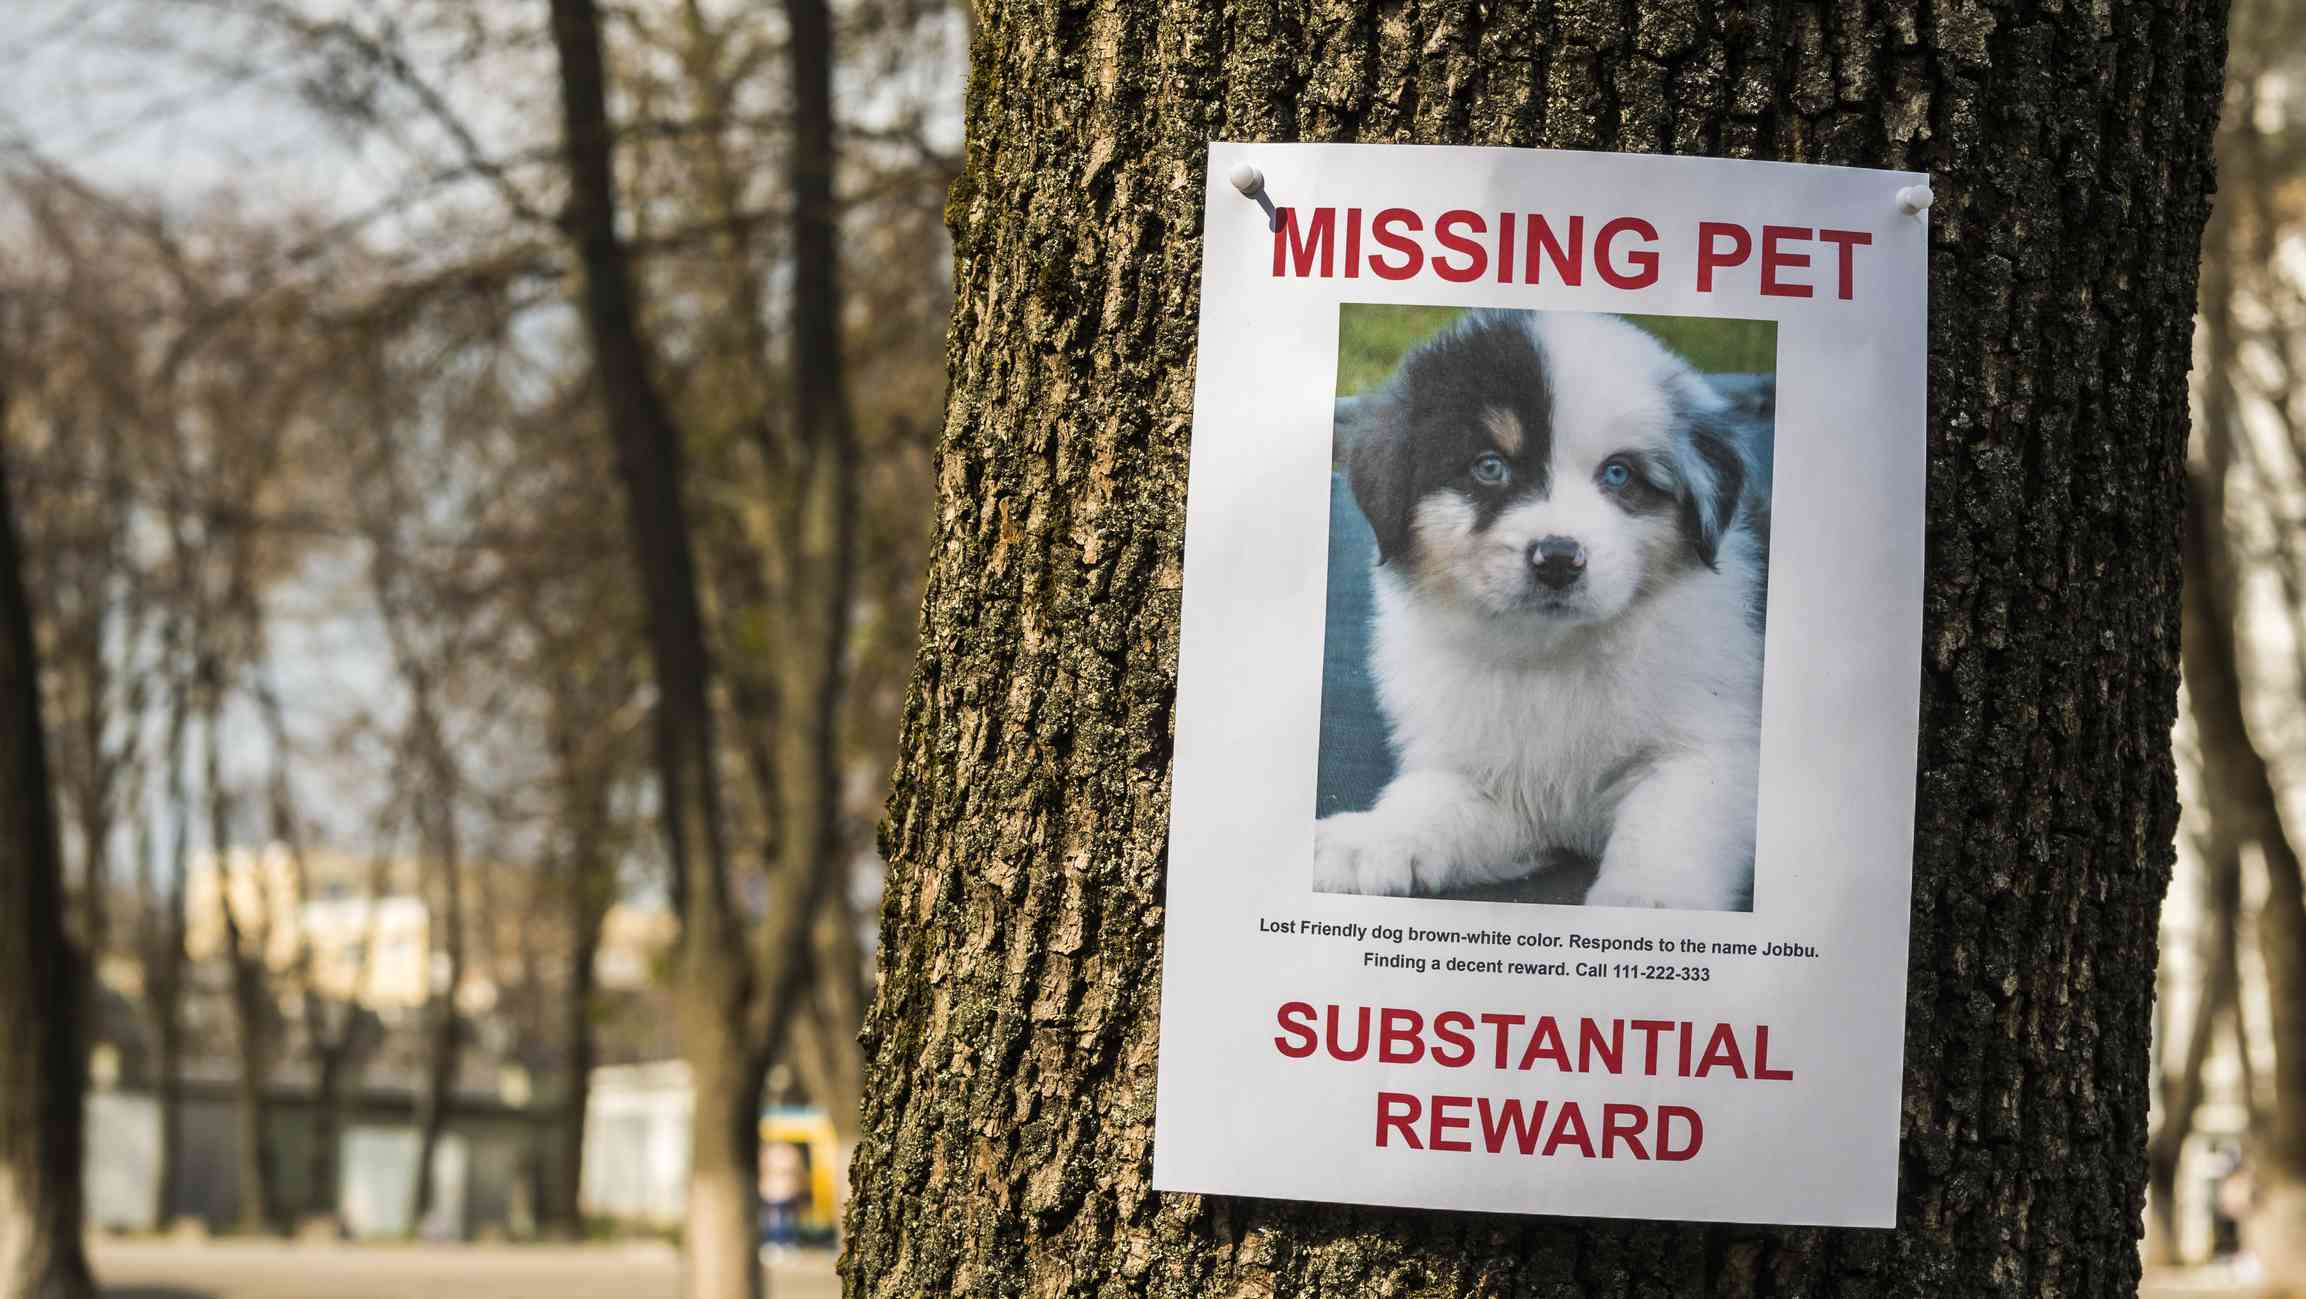 A lost dog poster advertising a reward.